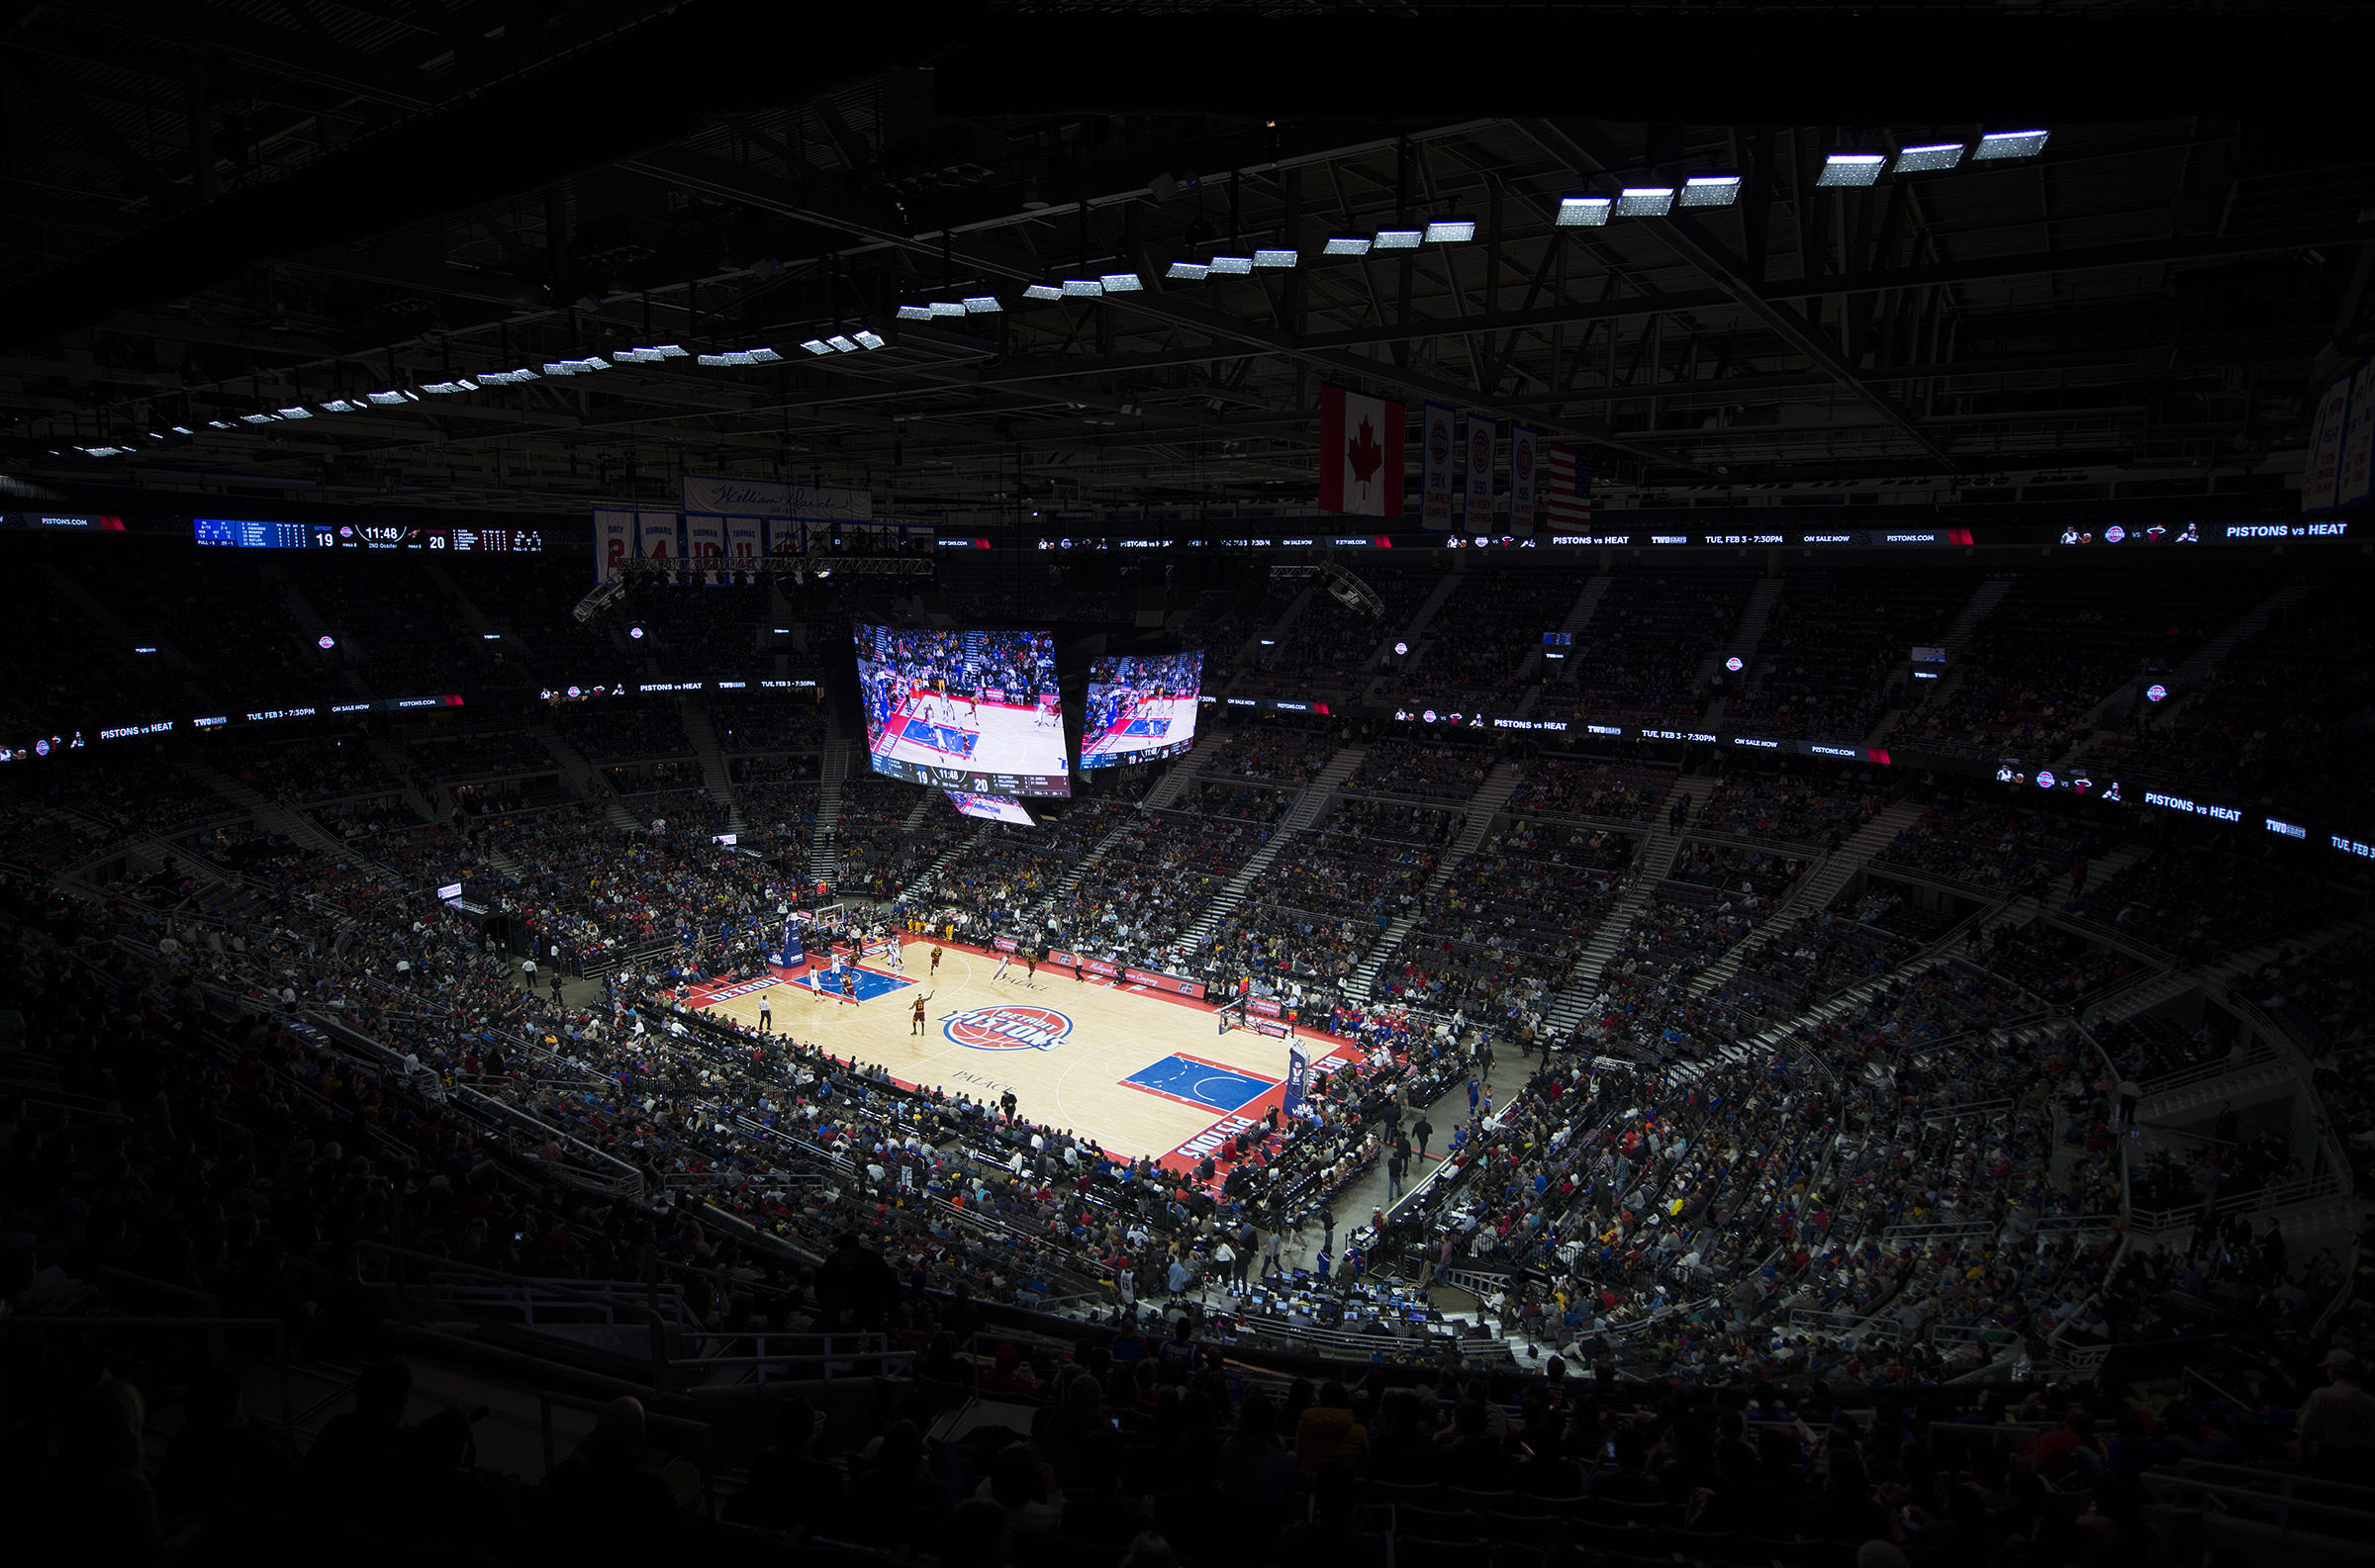 Musco Led System Shines At The Palace Of Auburn Hills